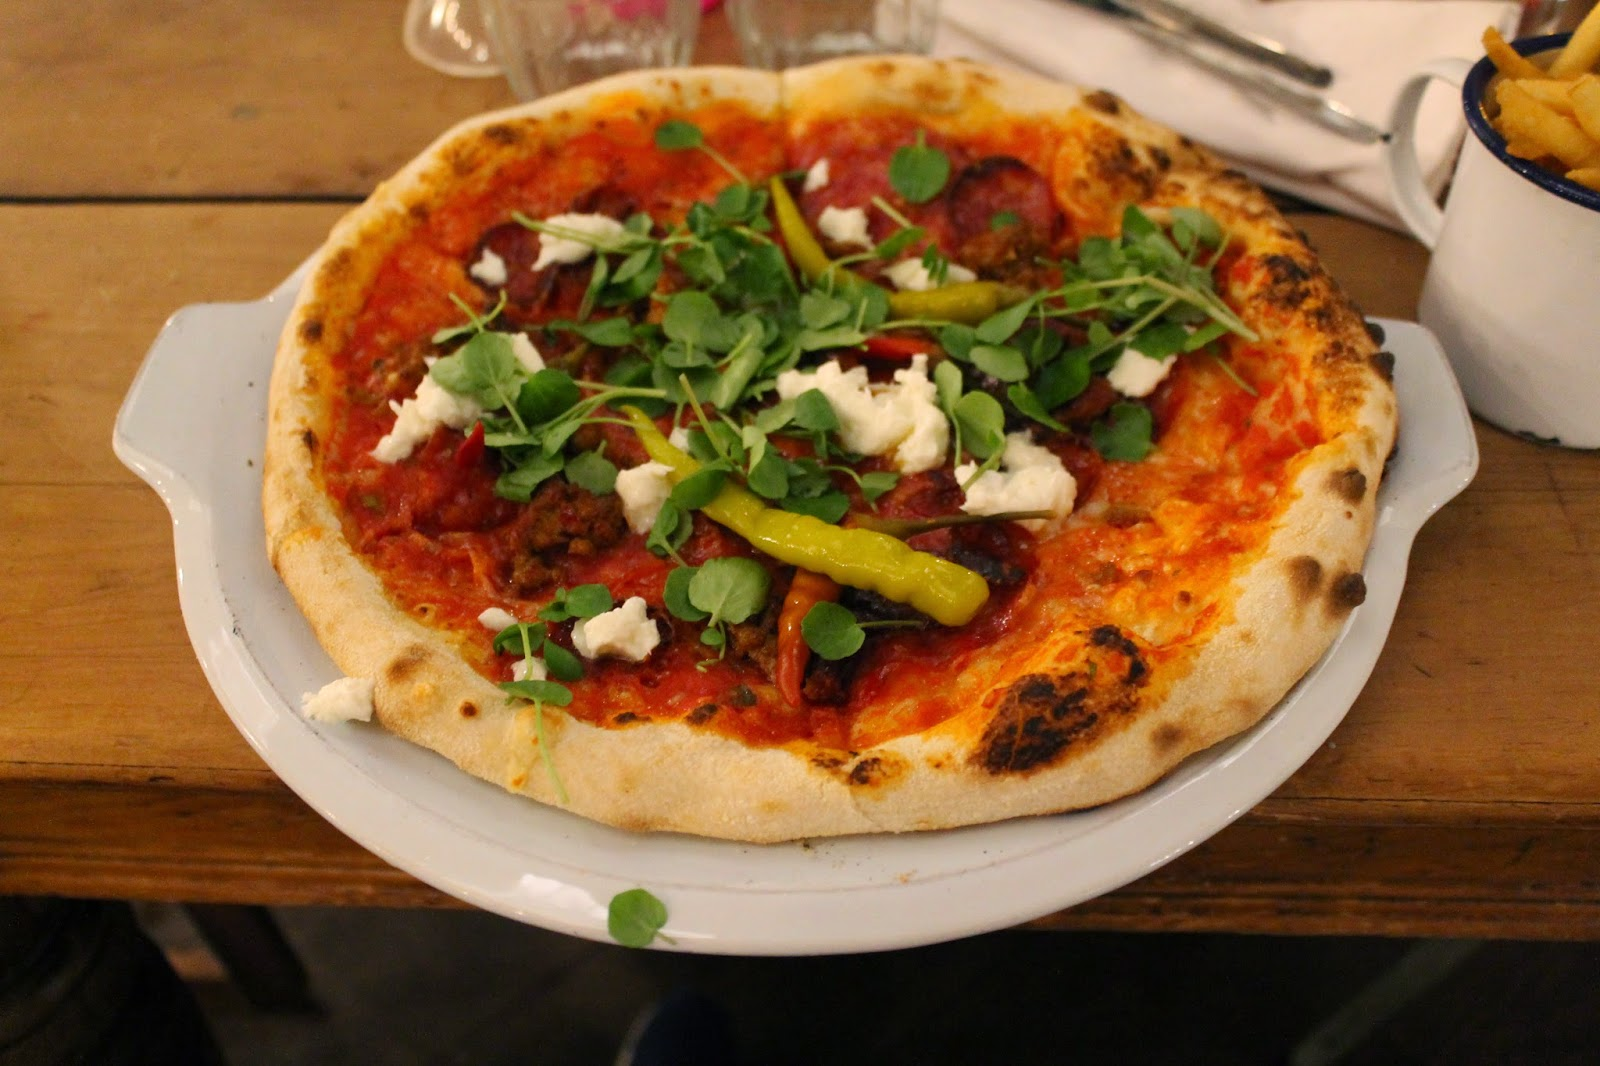 James Italian, Trattoria, Chelmsford, Essex, Food, Restaurant Review,